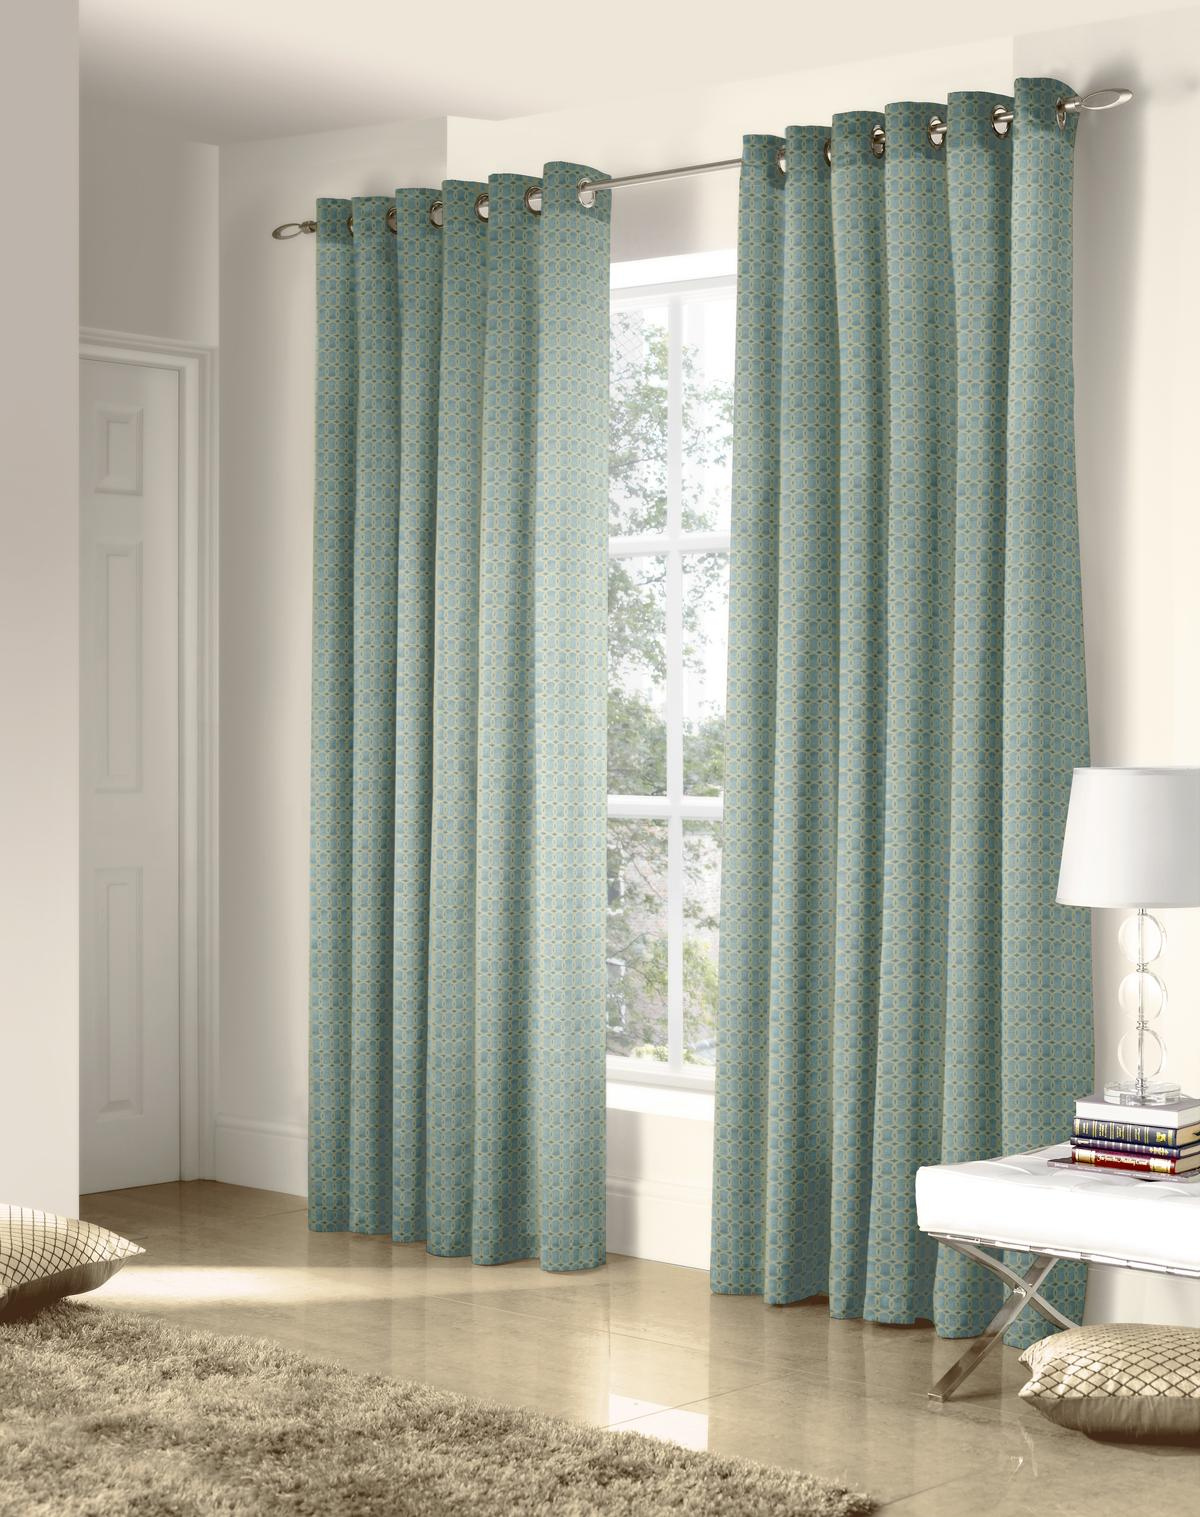 Ritz Eyelet Curtains In Duck Egg   Free UK Delivery   Terrys Fabrics